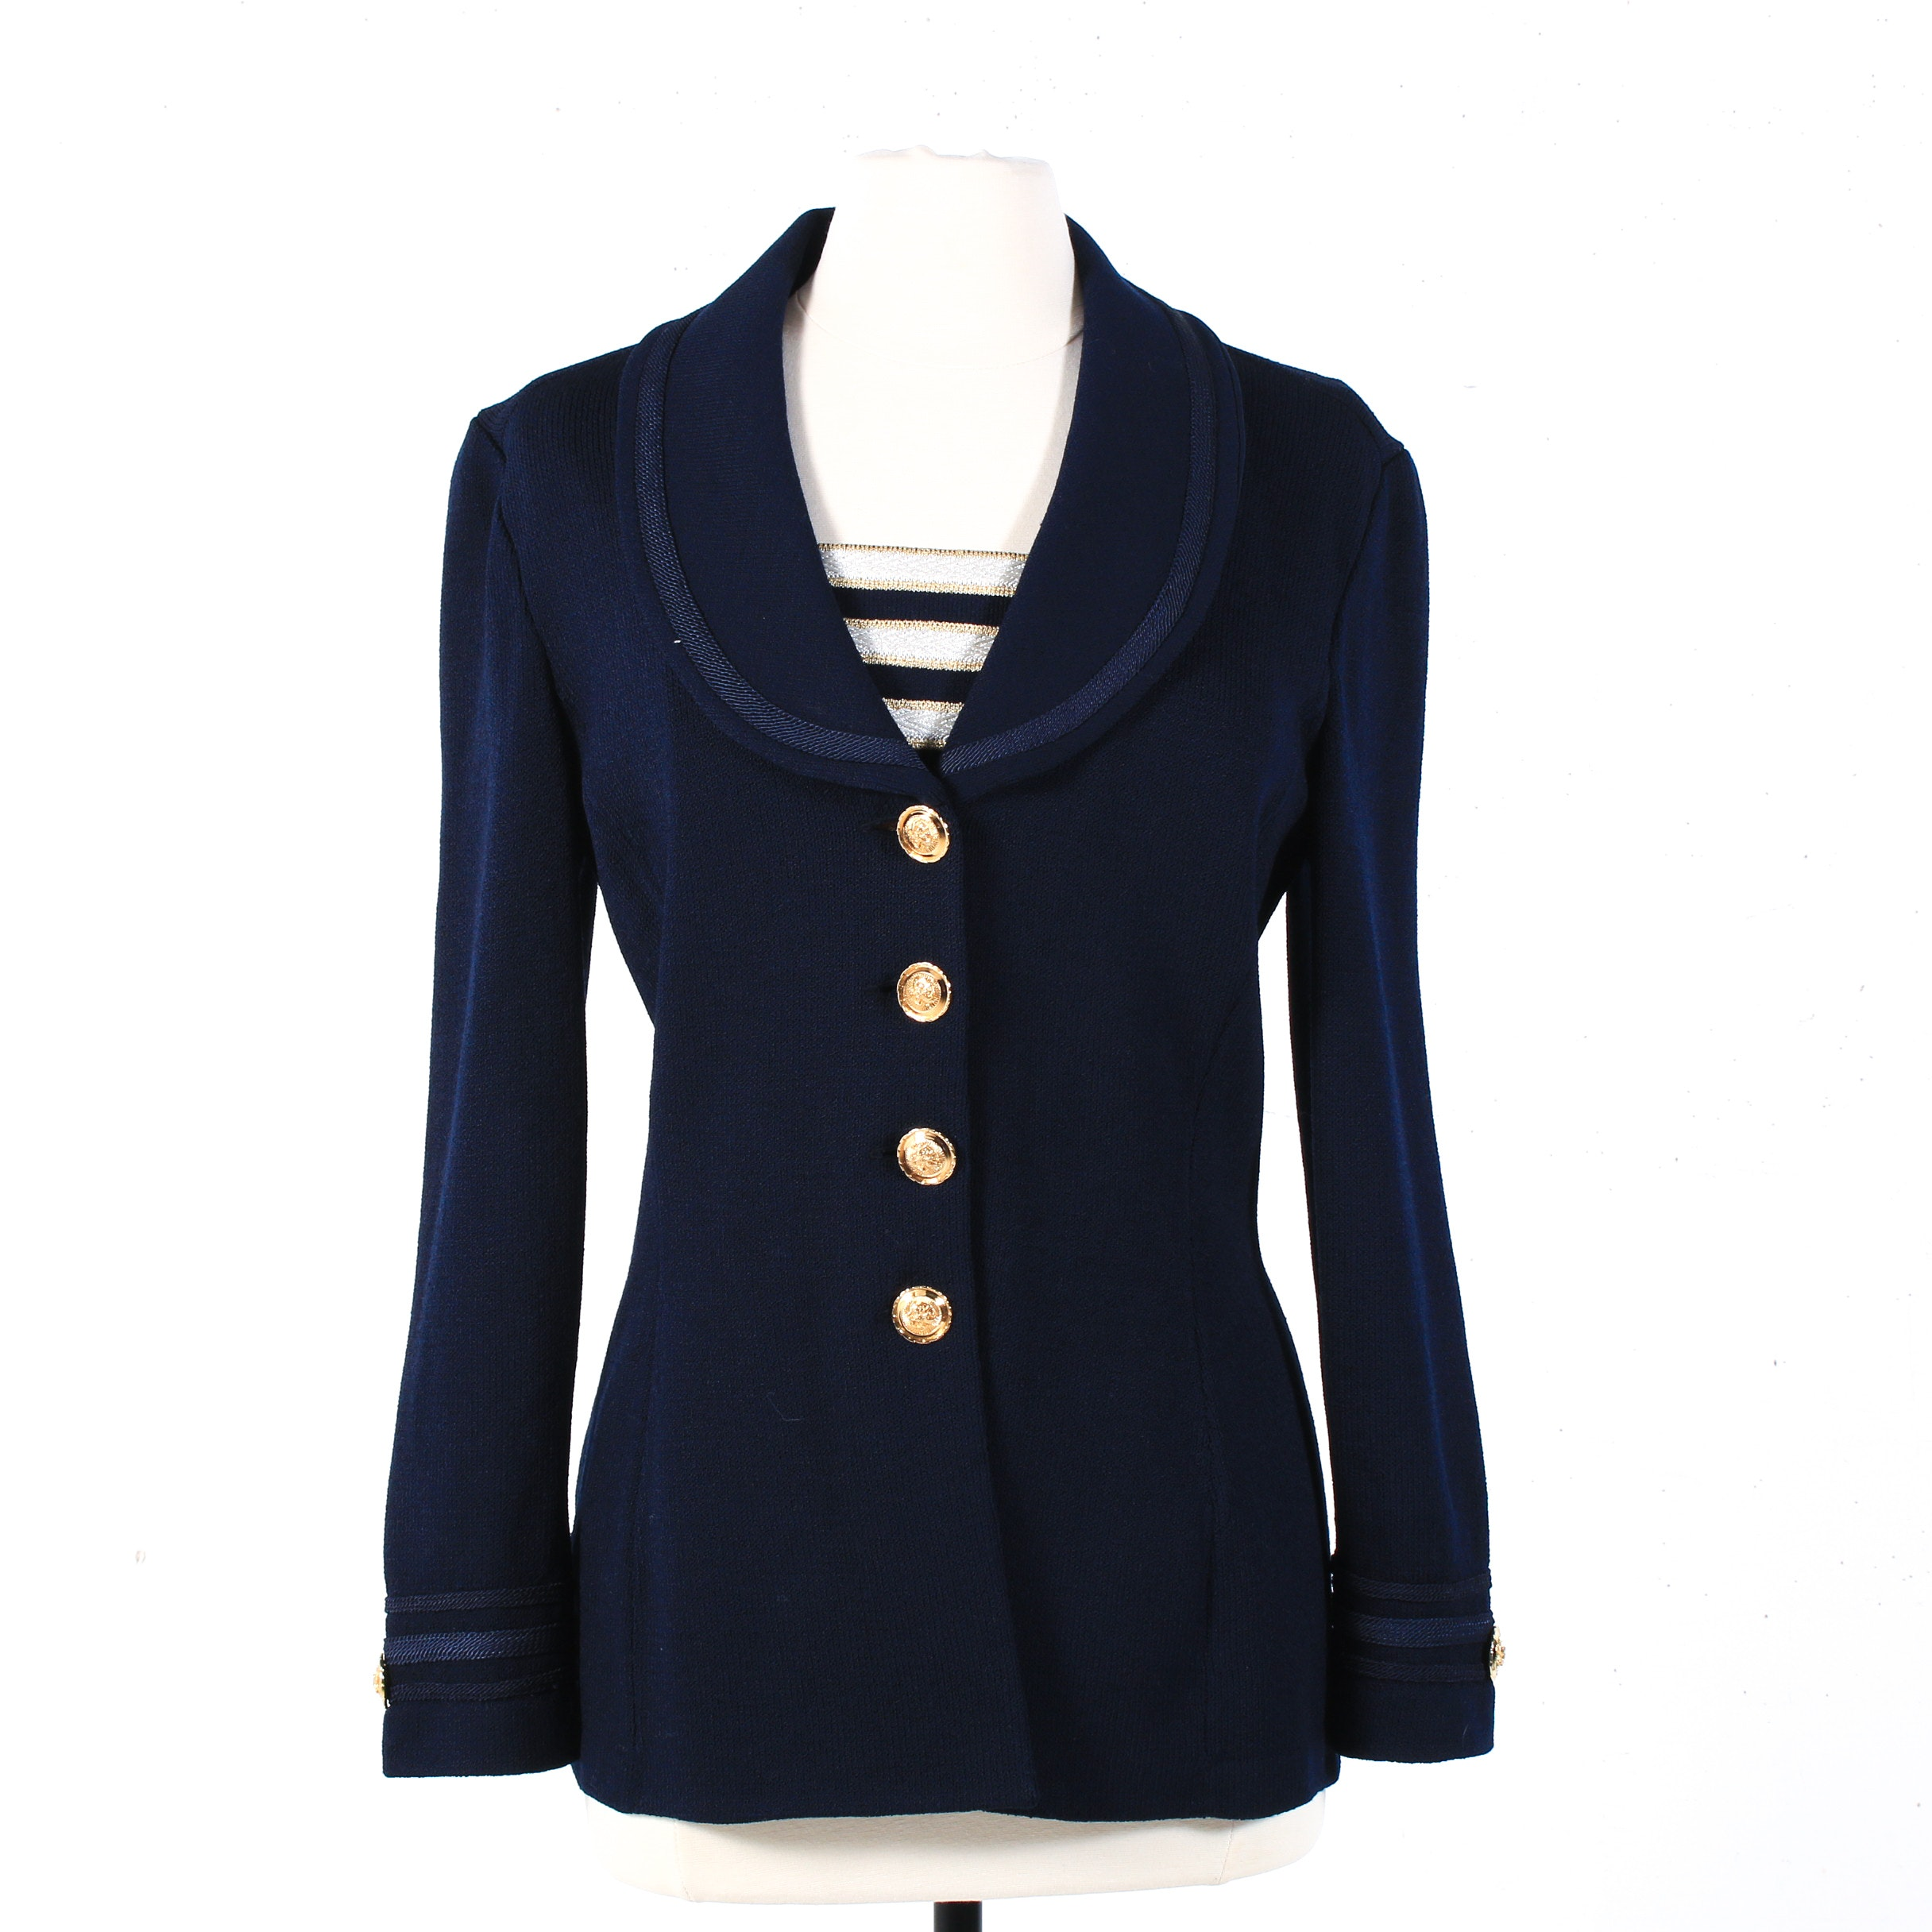 St. John Collection Nautical Style Knit Jacket with Detachable Dickey